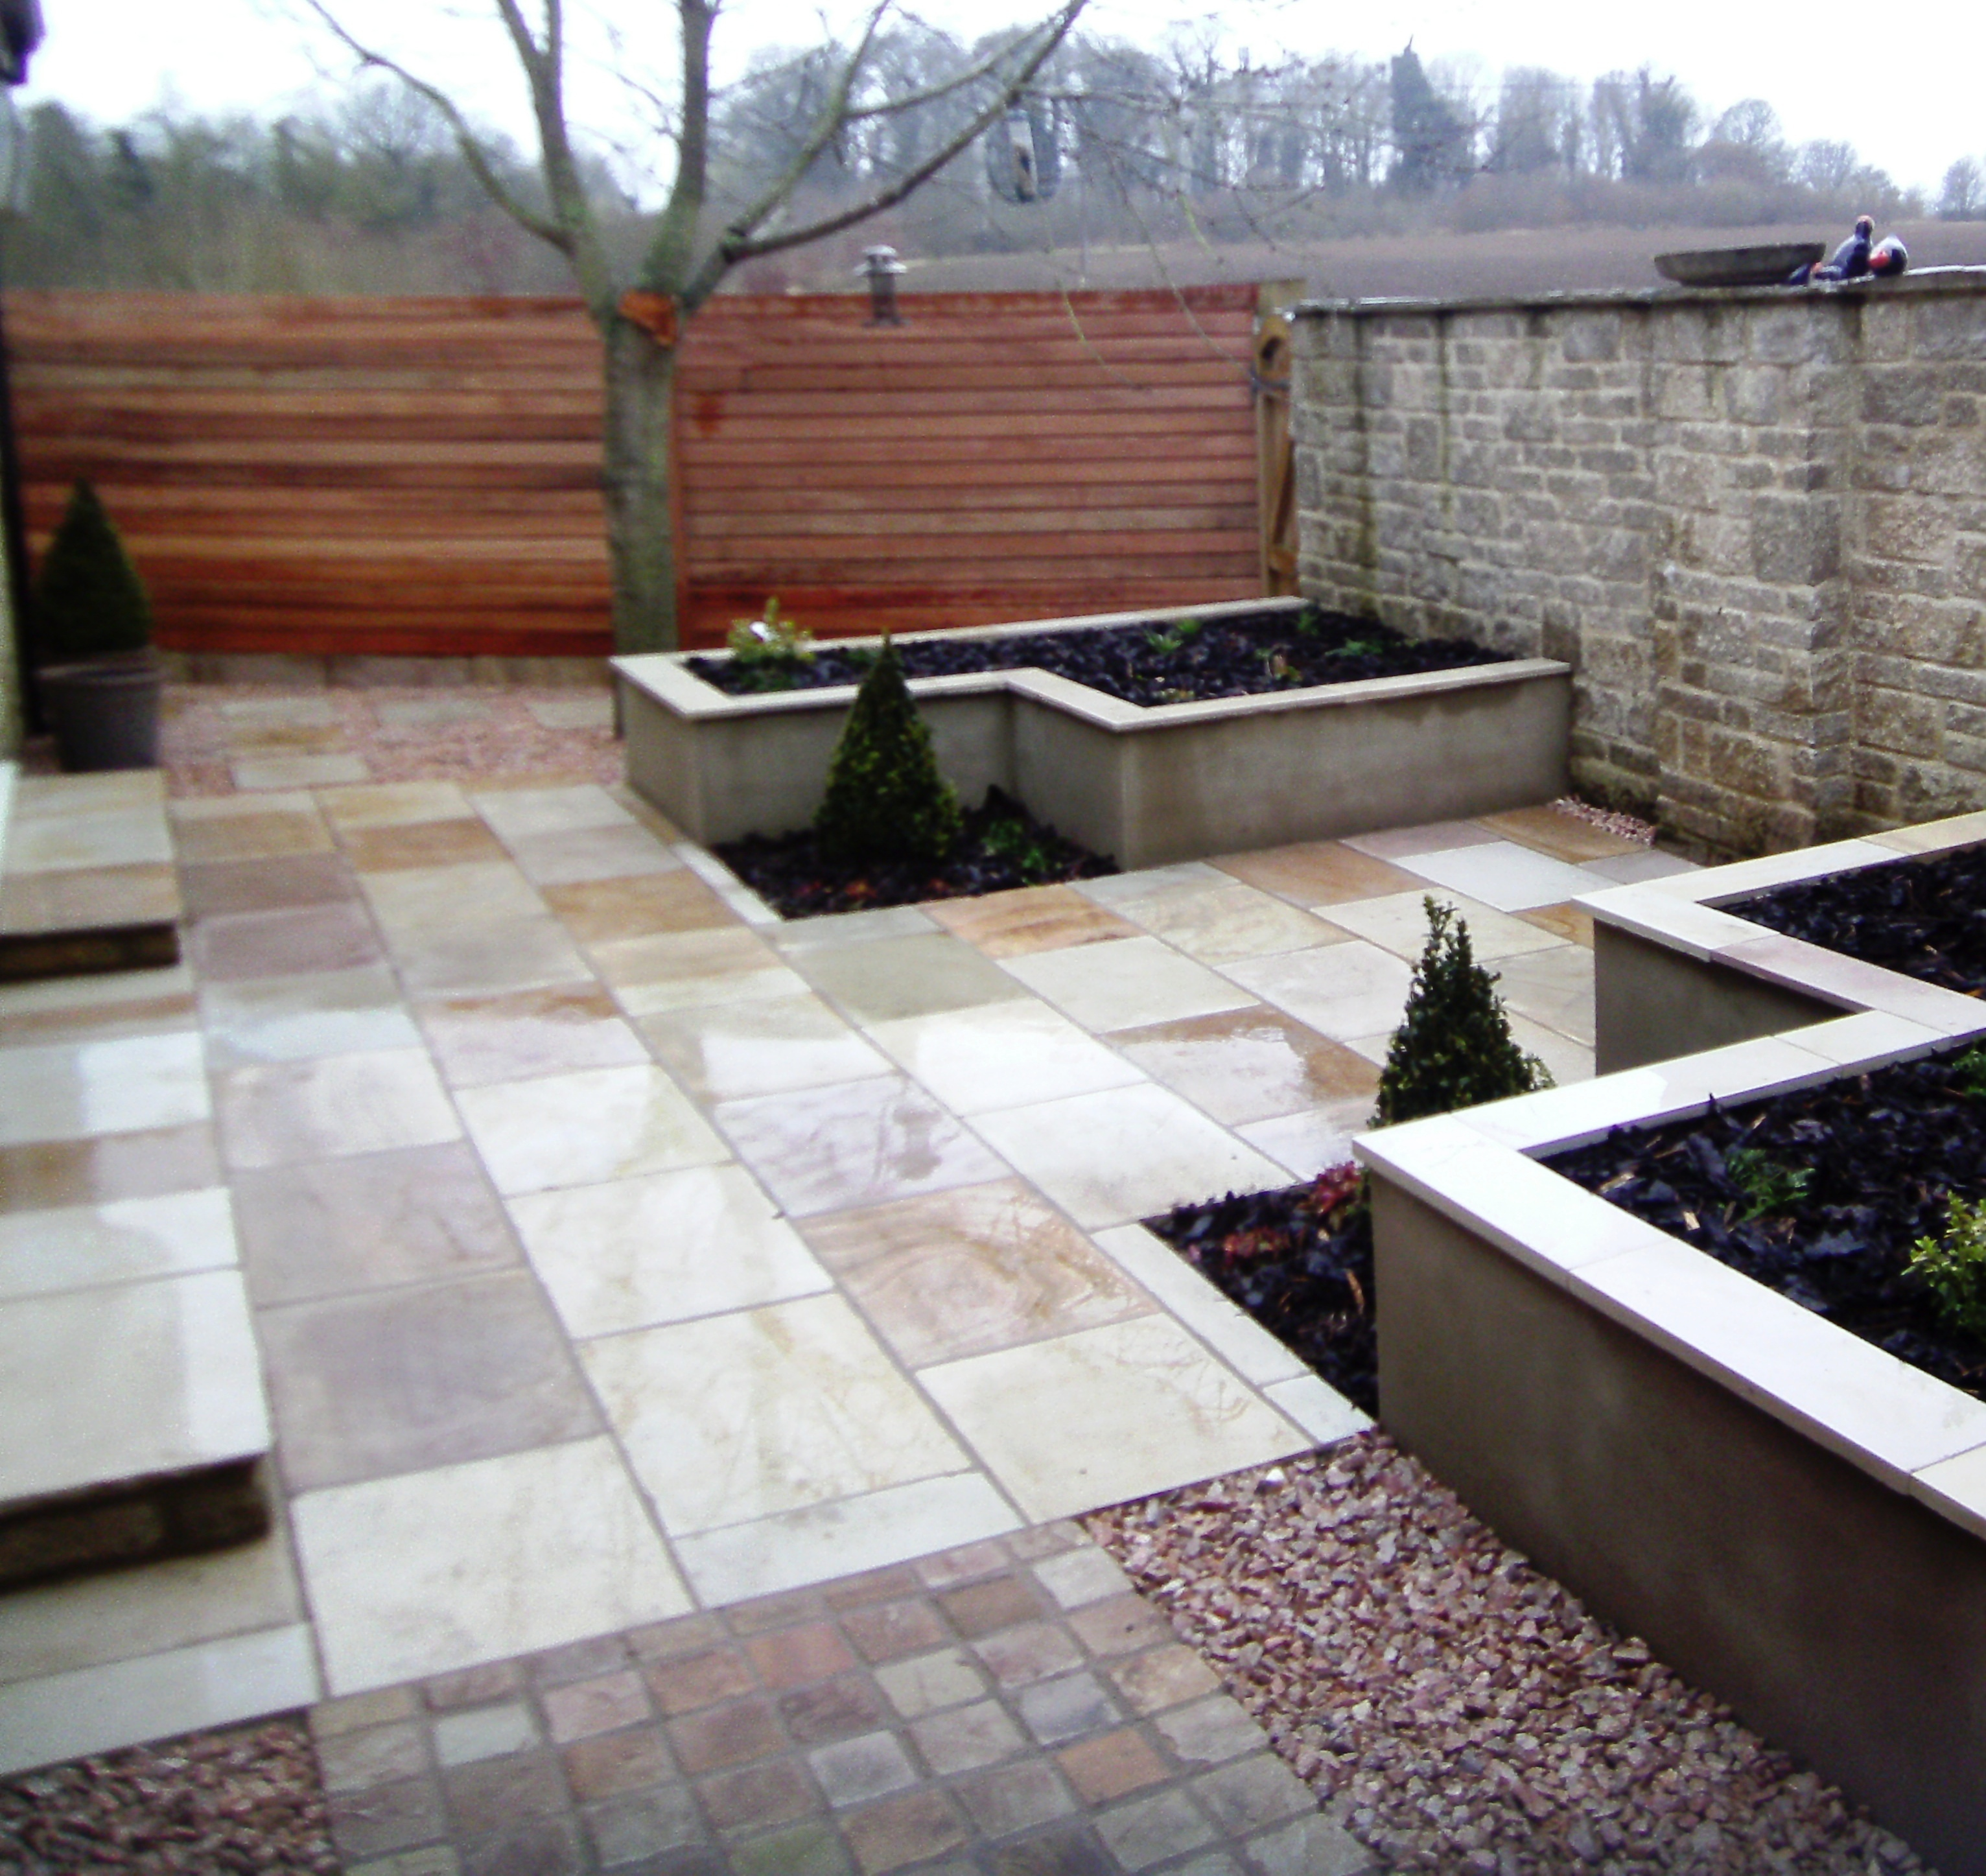 Contemporary garden design fairford gloucestershire for Suzhou architecture gardens landscape planning design company limited